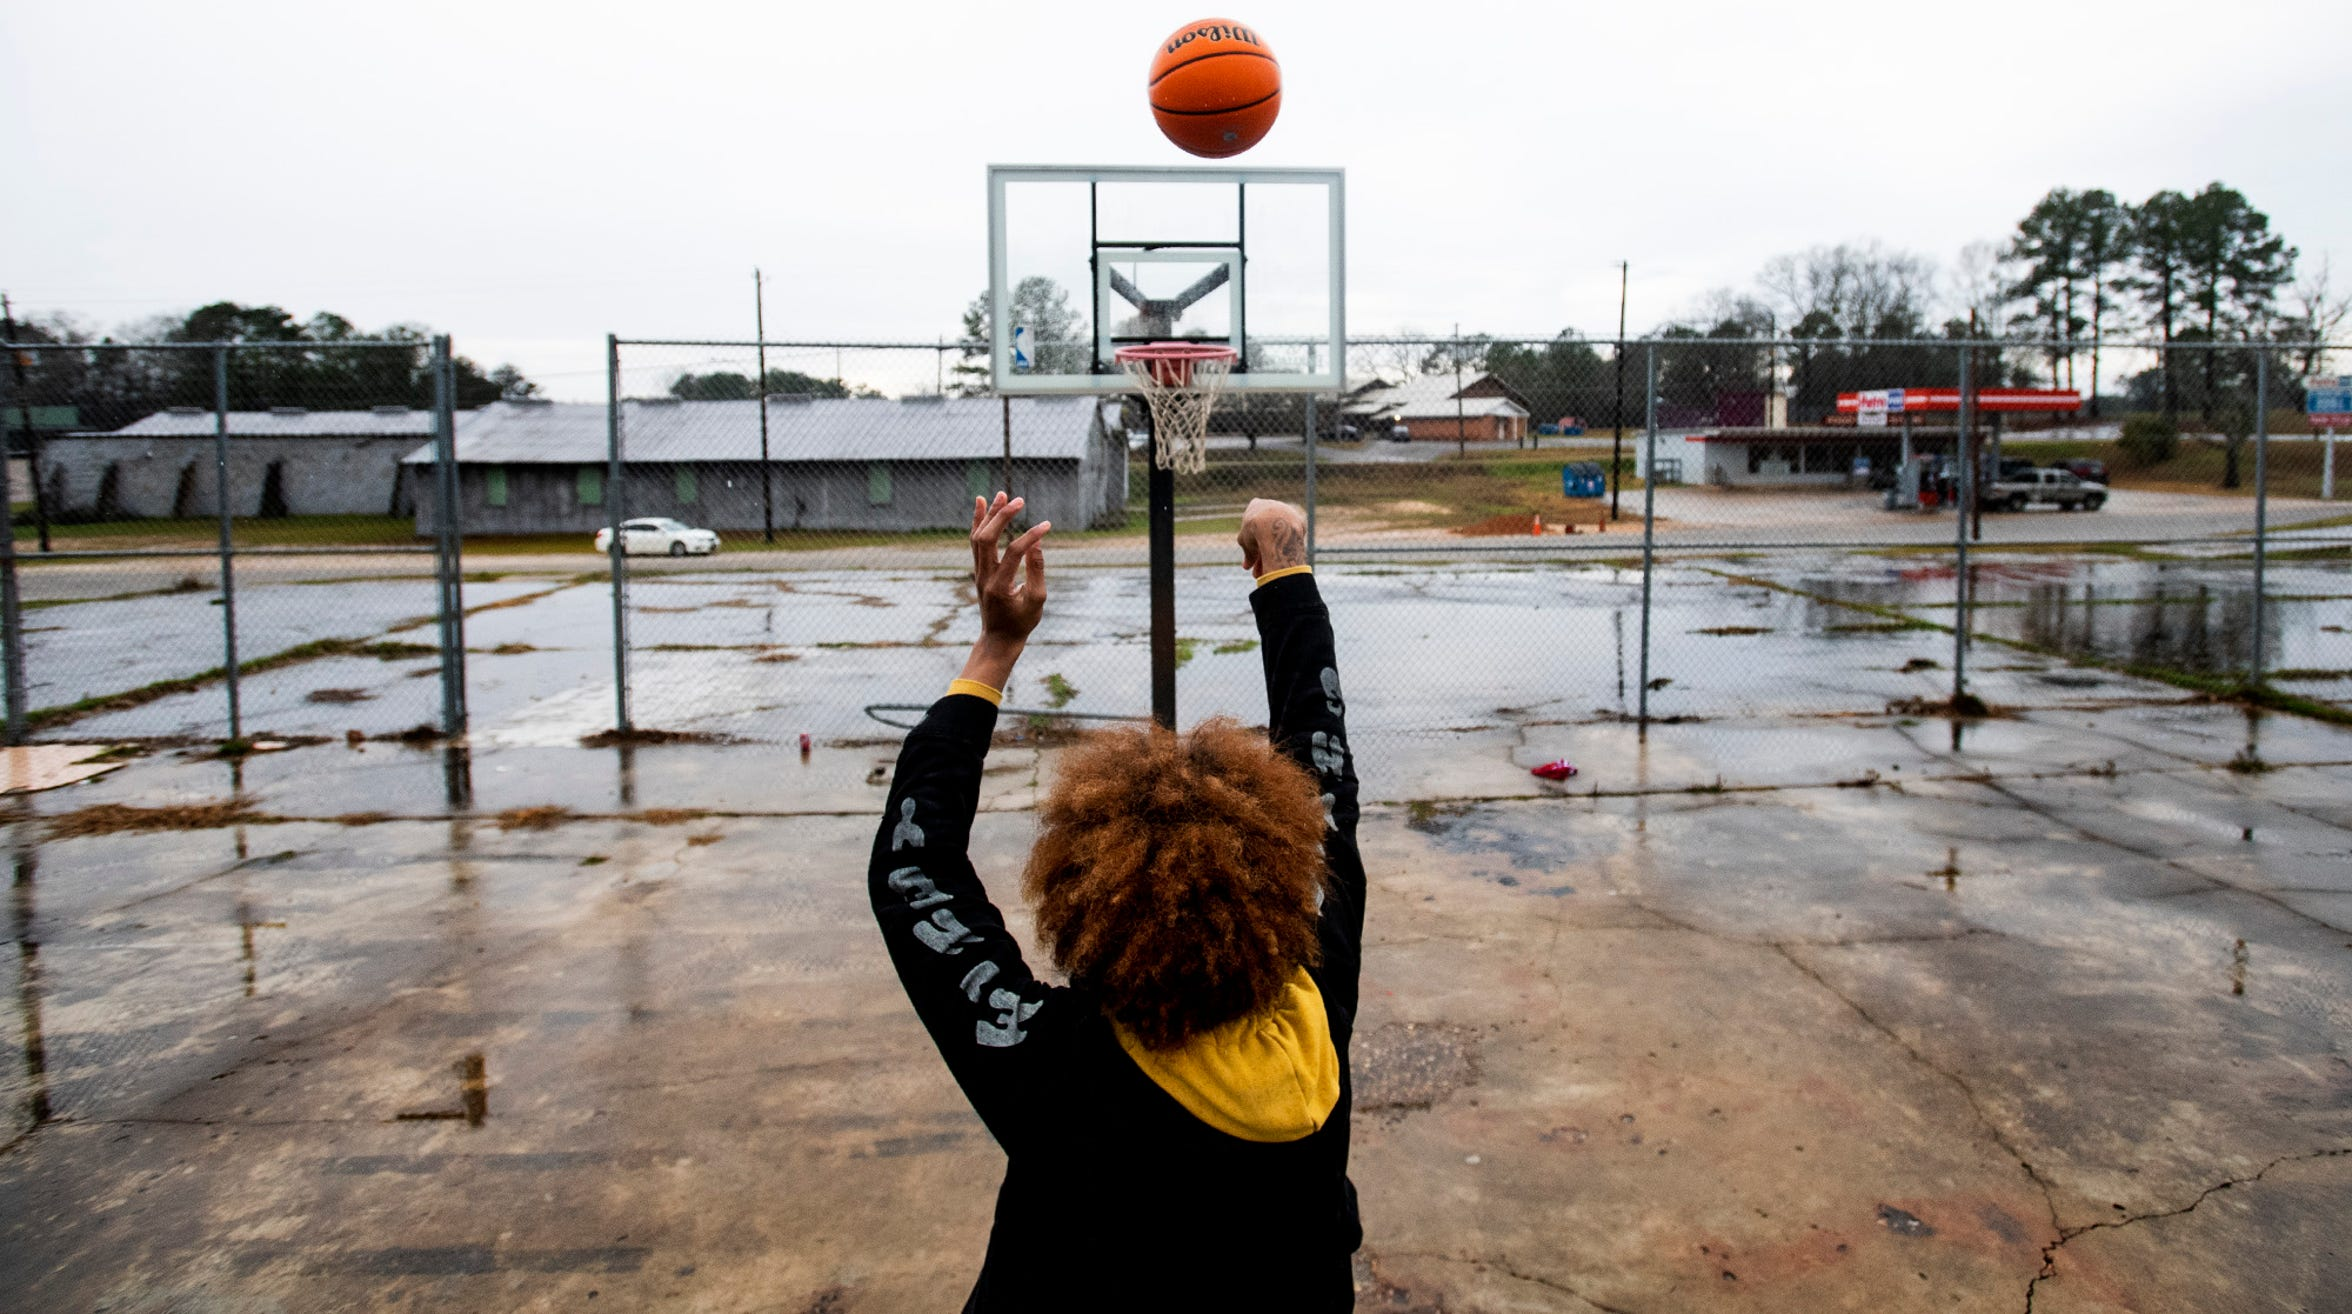 J.D. Davison shoots hoops on an outdoor public court, known as The Cage, in Fort Deposit, Ala., on Wednesday January 29, 2020.  Davison plays at Calhoun.